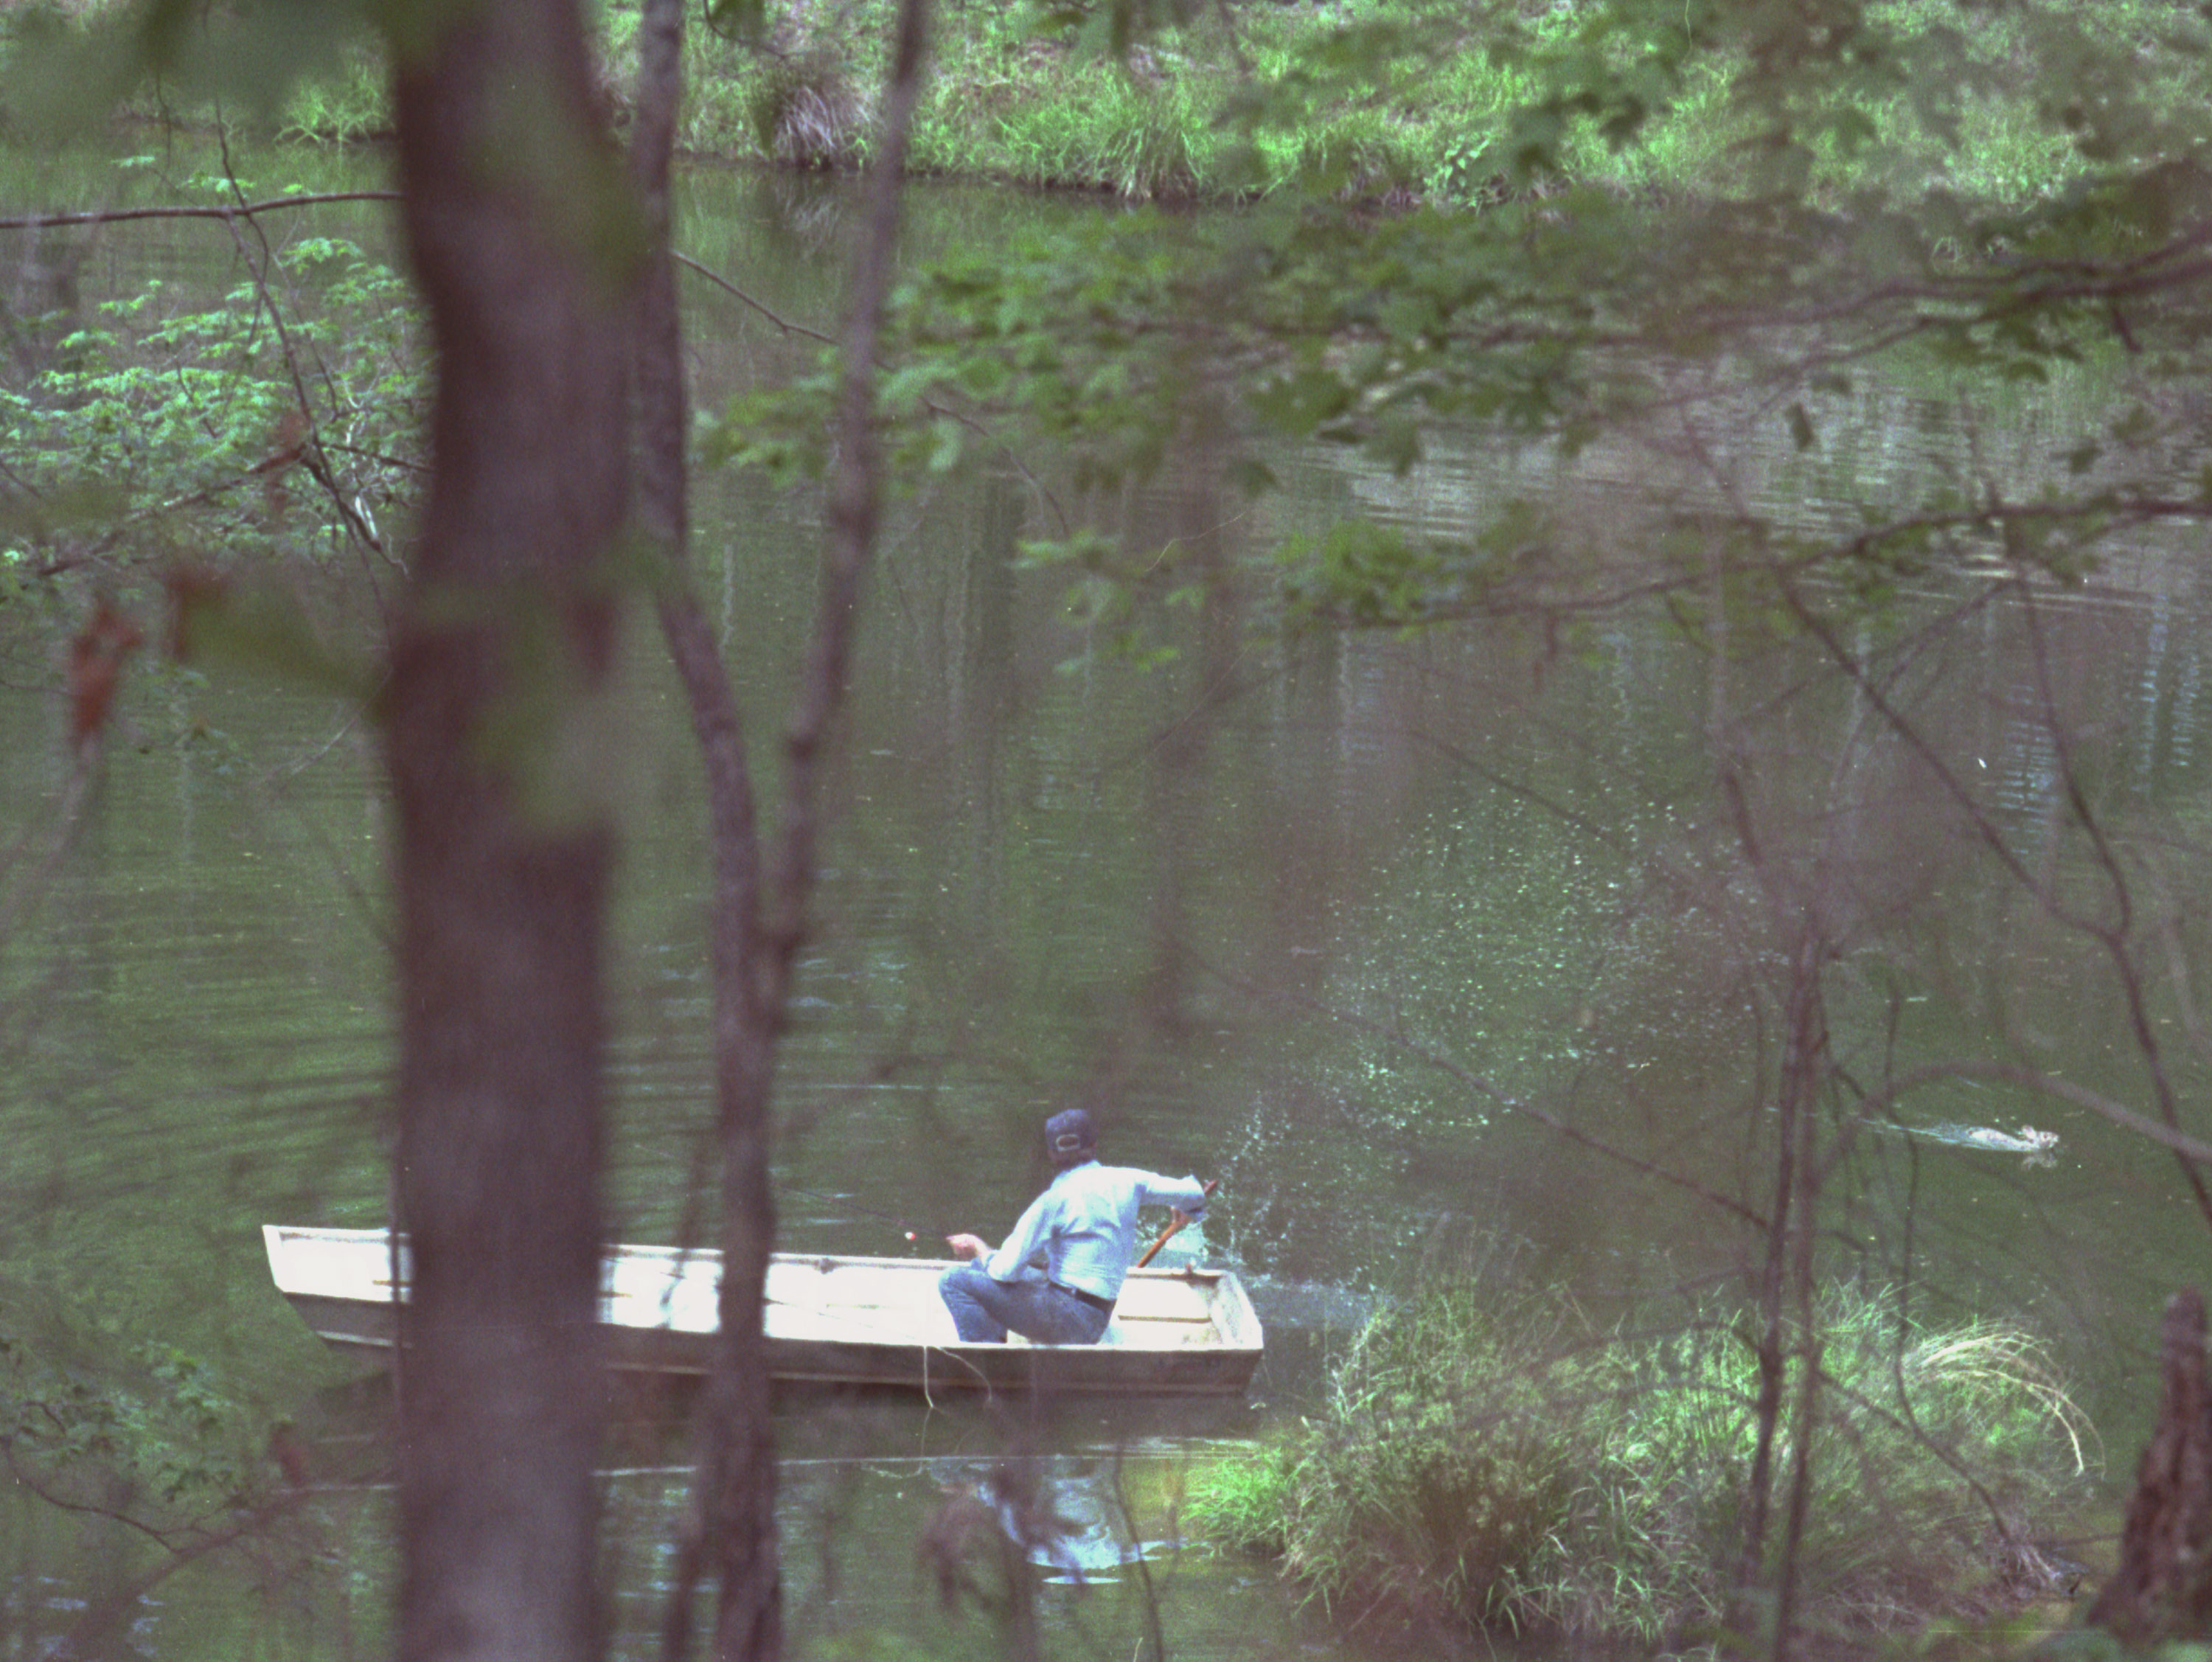 file jimmy carter in boat chasing away swimming rabbit plains